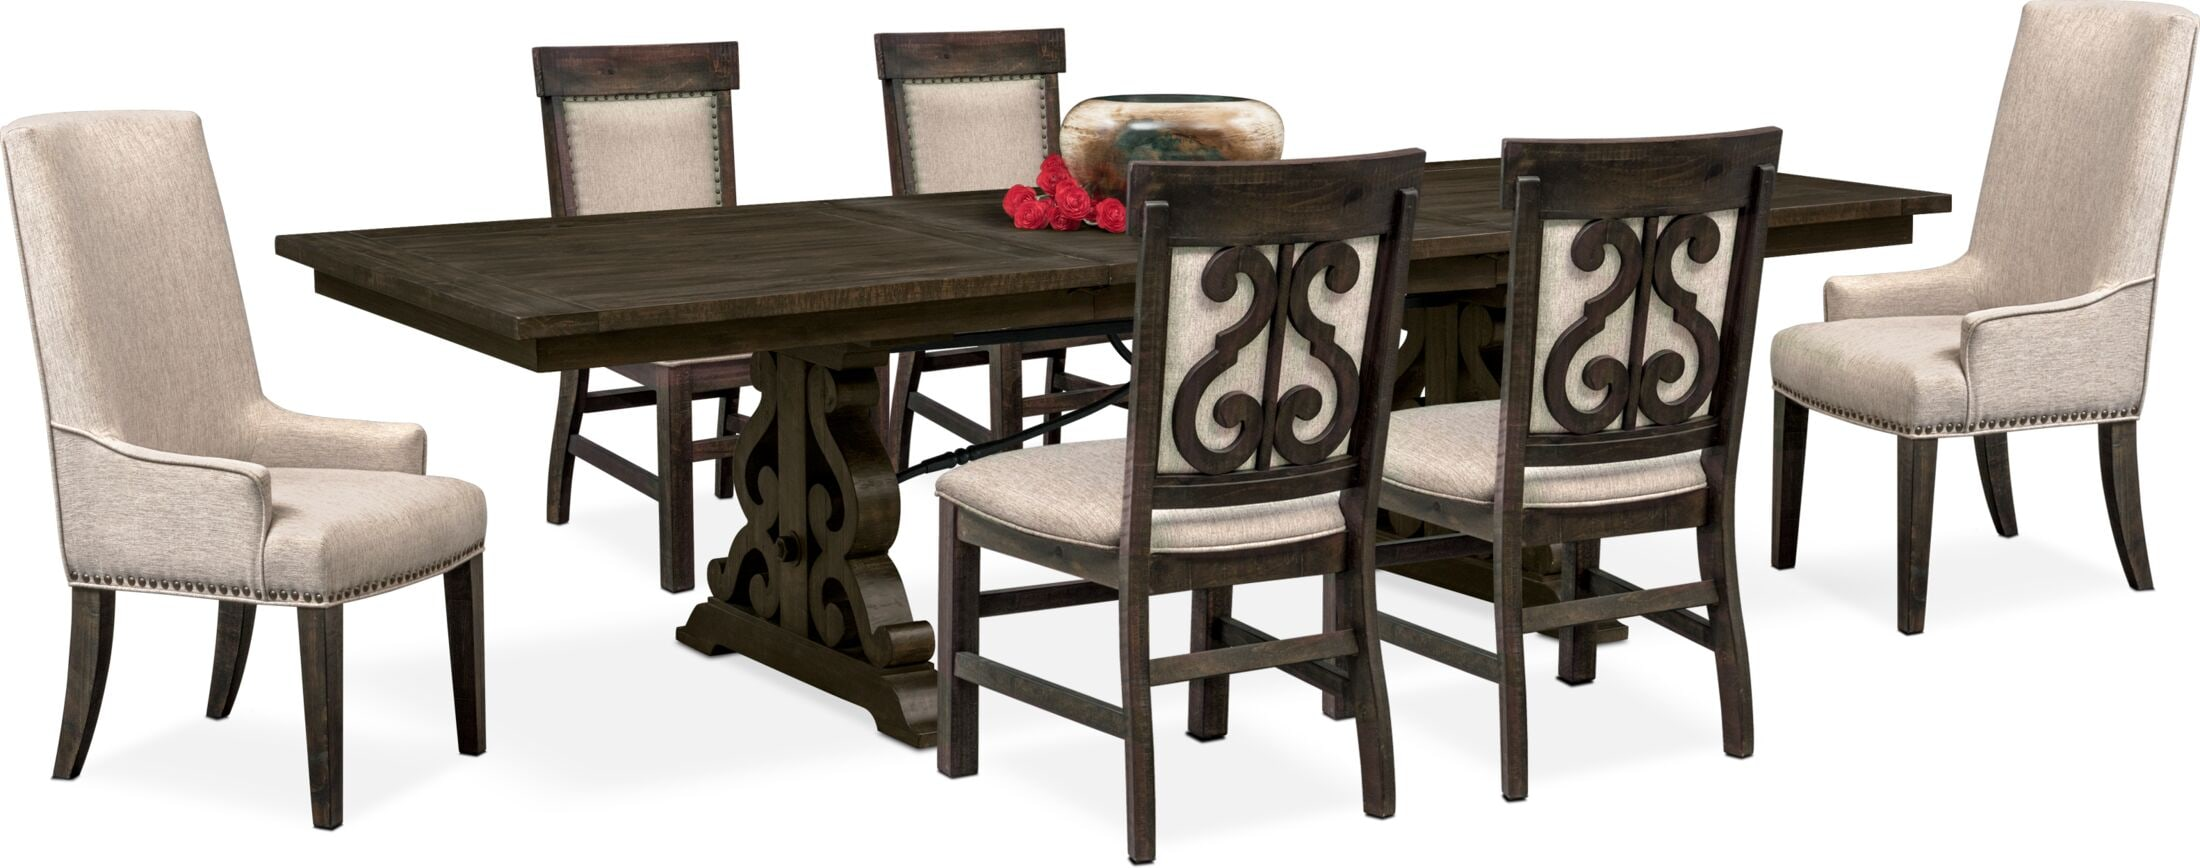 Dining Room Furniture - Charthouse Rectangular Dining Table, 2 Host Chairs and 4 Upholstered Dining Chairs